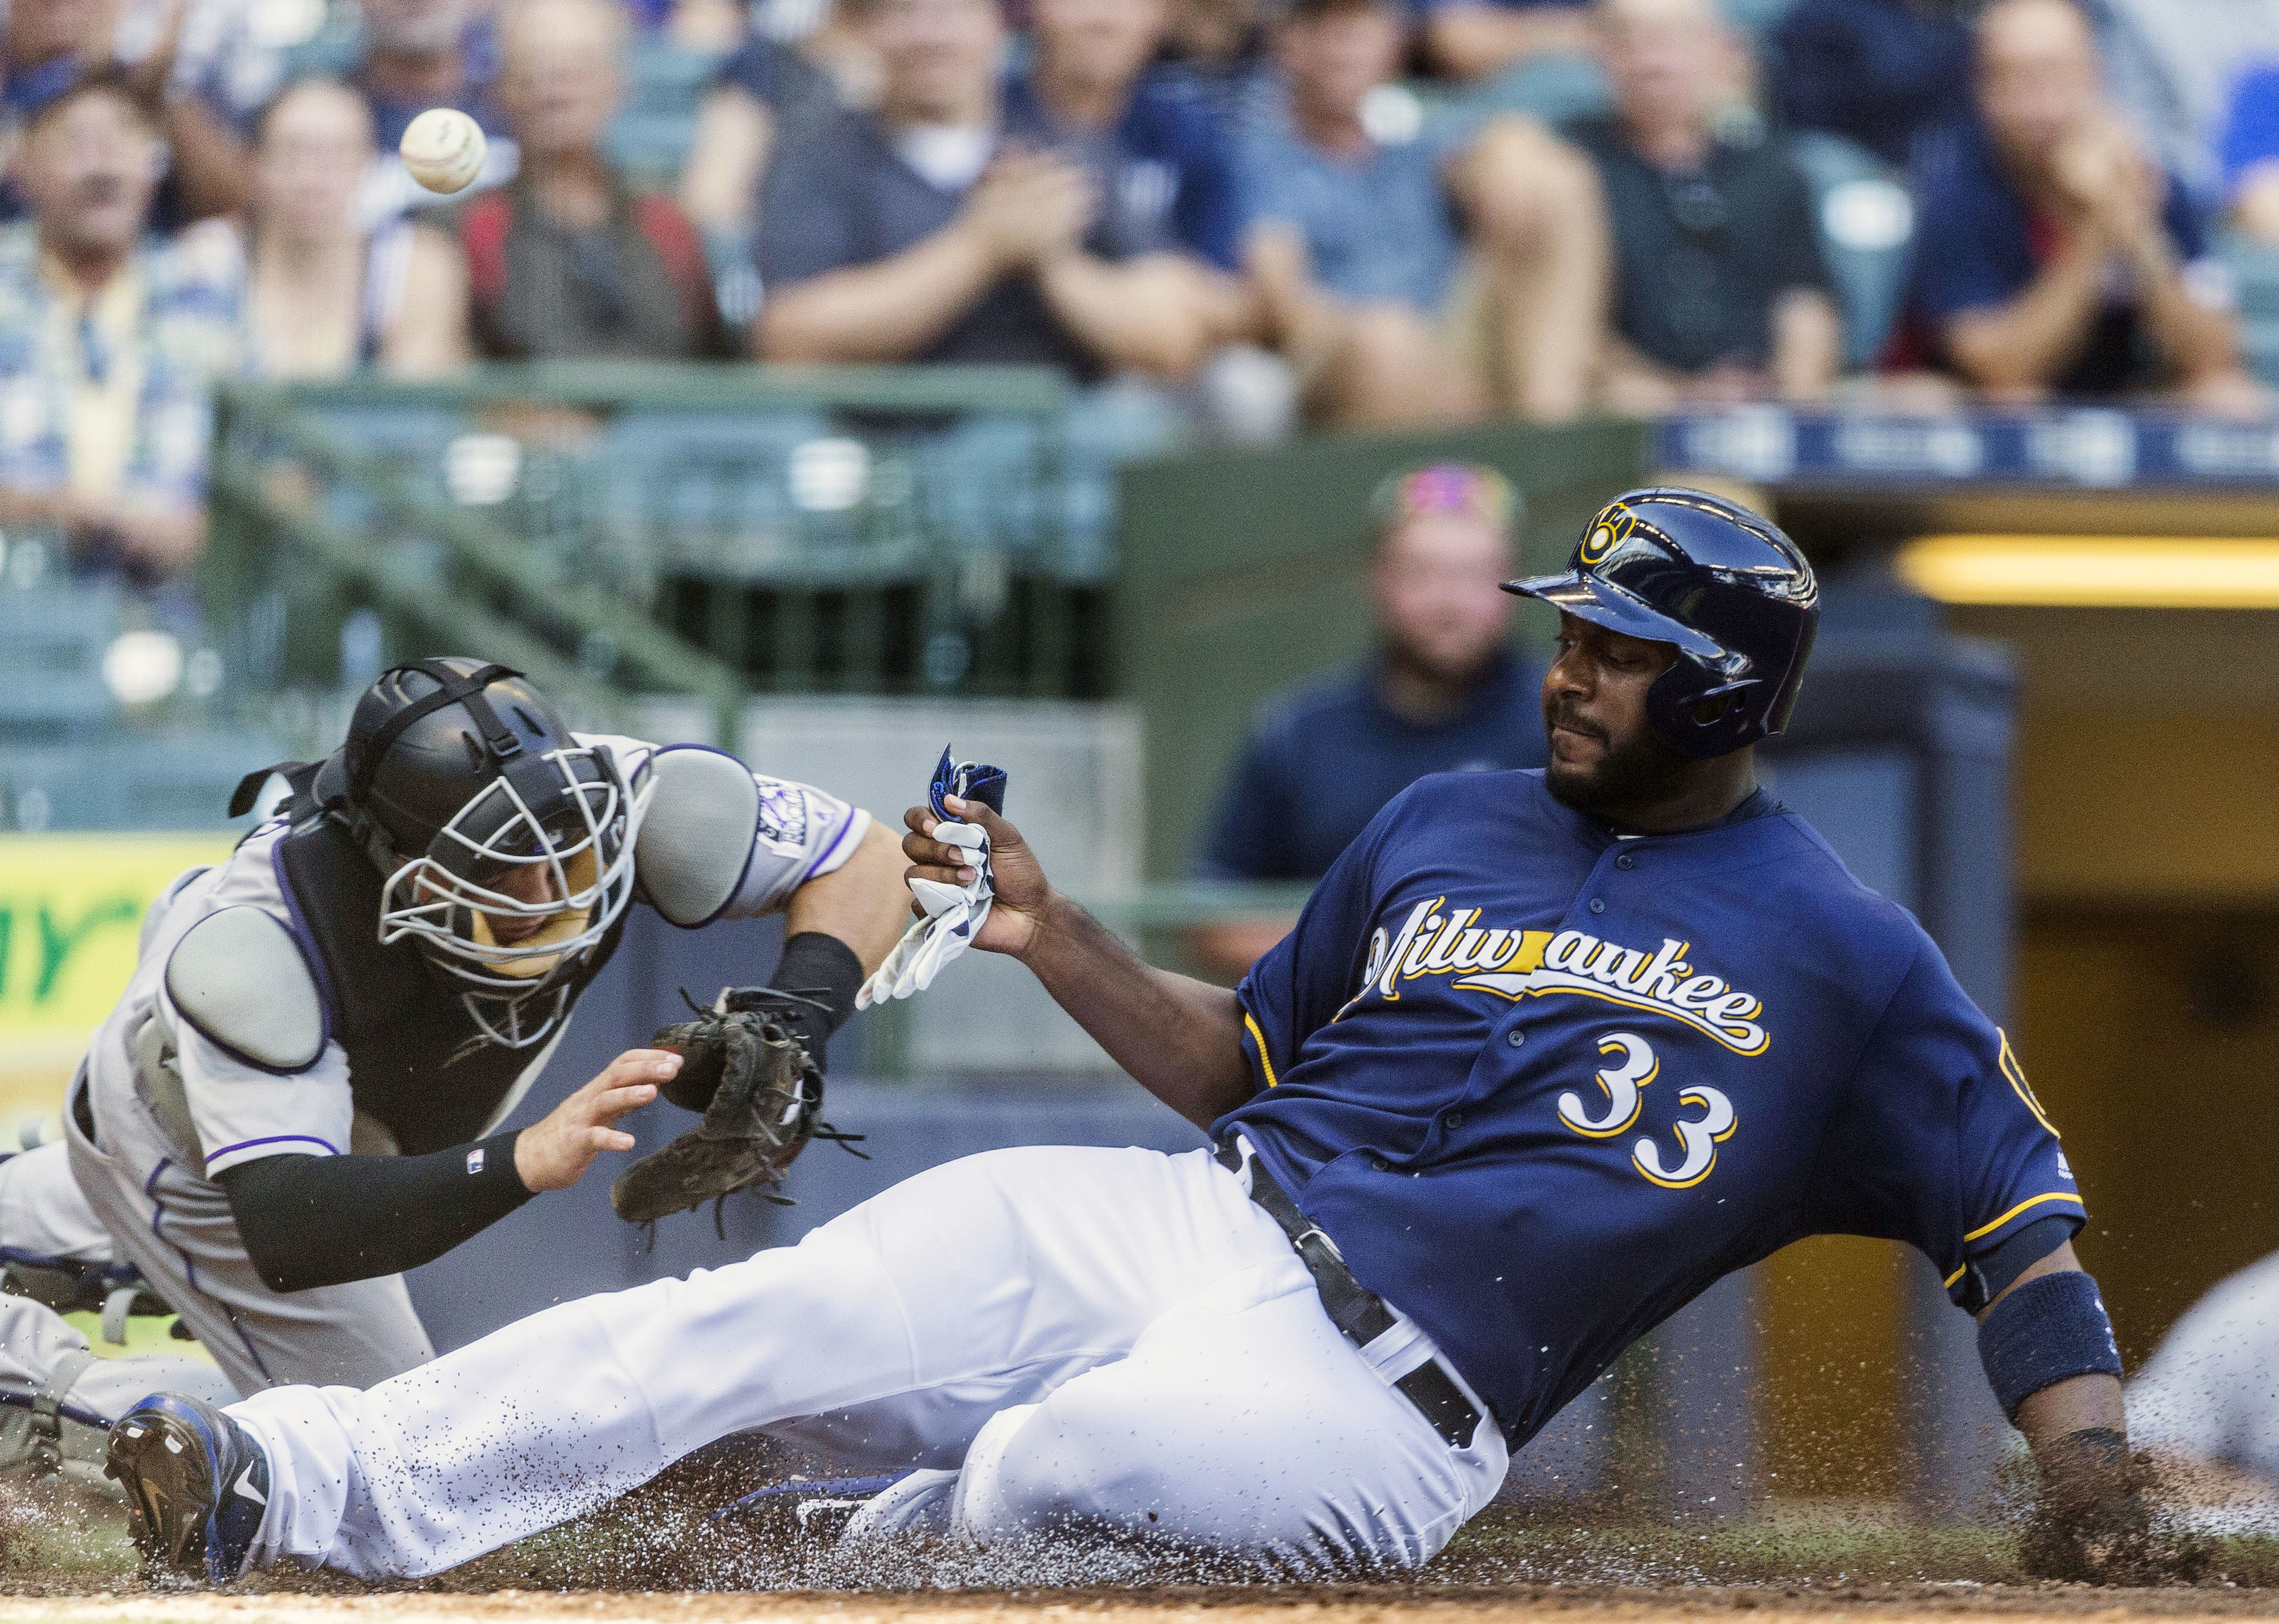 Milwaukee Brewers' Chris Carter is safe at home as Colorado Rockies' Tony Wolters cannot hold on to the ball during a play at the plate in the seventh inning of a baseball game Wednesday, Aug. 24, 2016, in Milwaukee. (AP Photo/Tom Lynn)